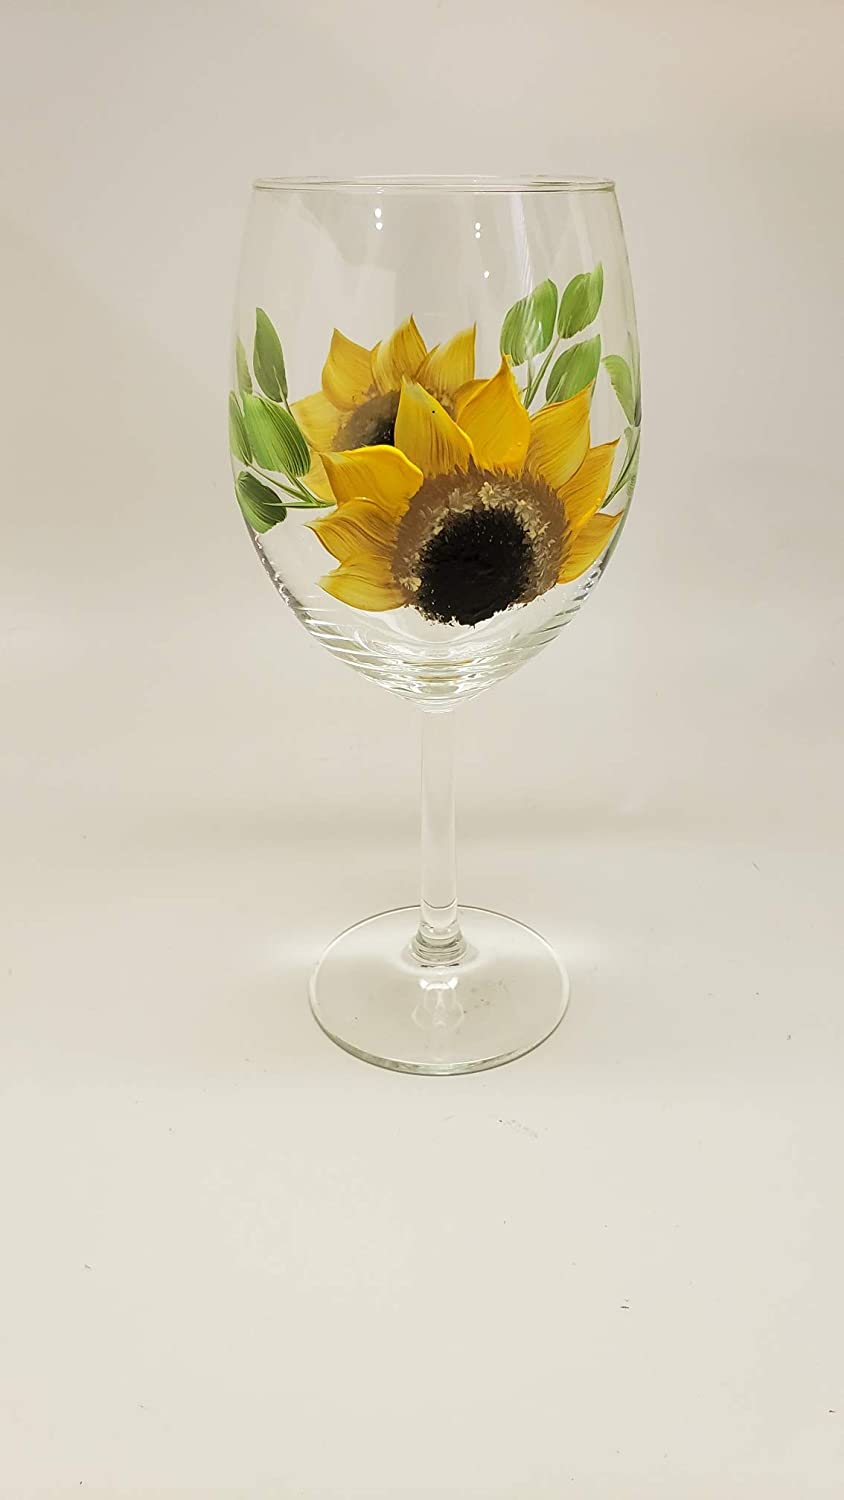 cheap Hand Painted Sunflower Wine Glass 15 Sale Special Price 21 10 stemless oz